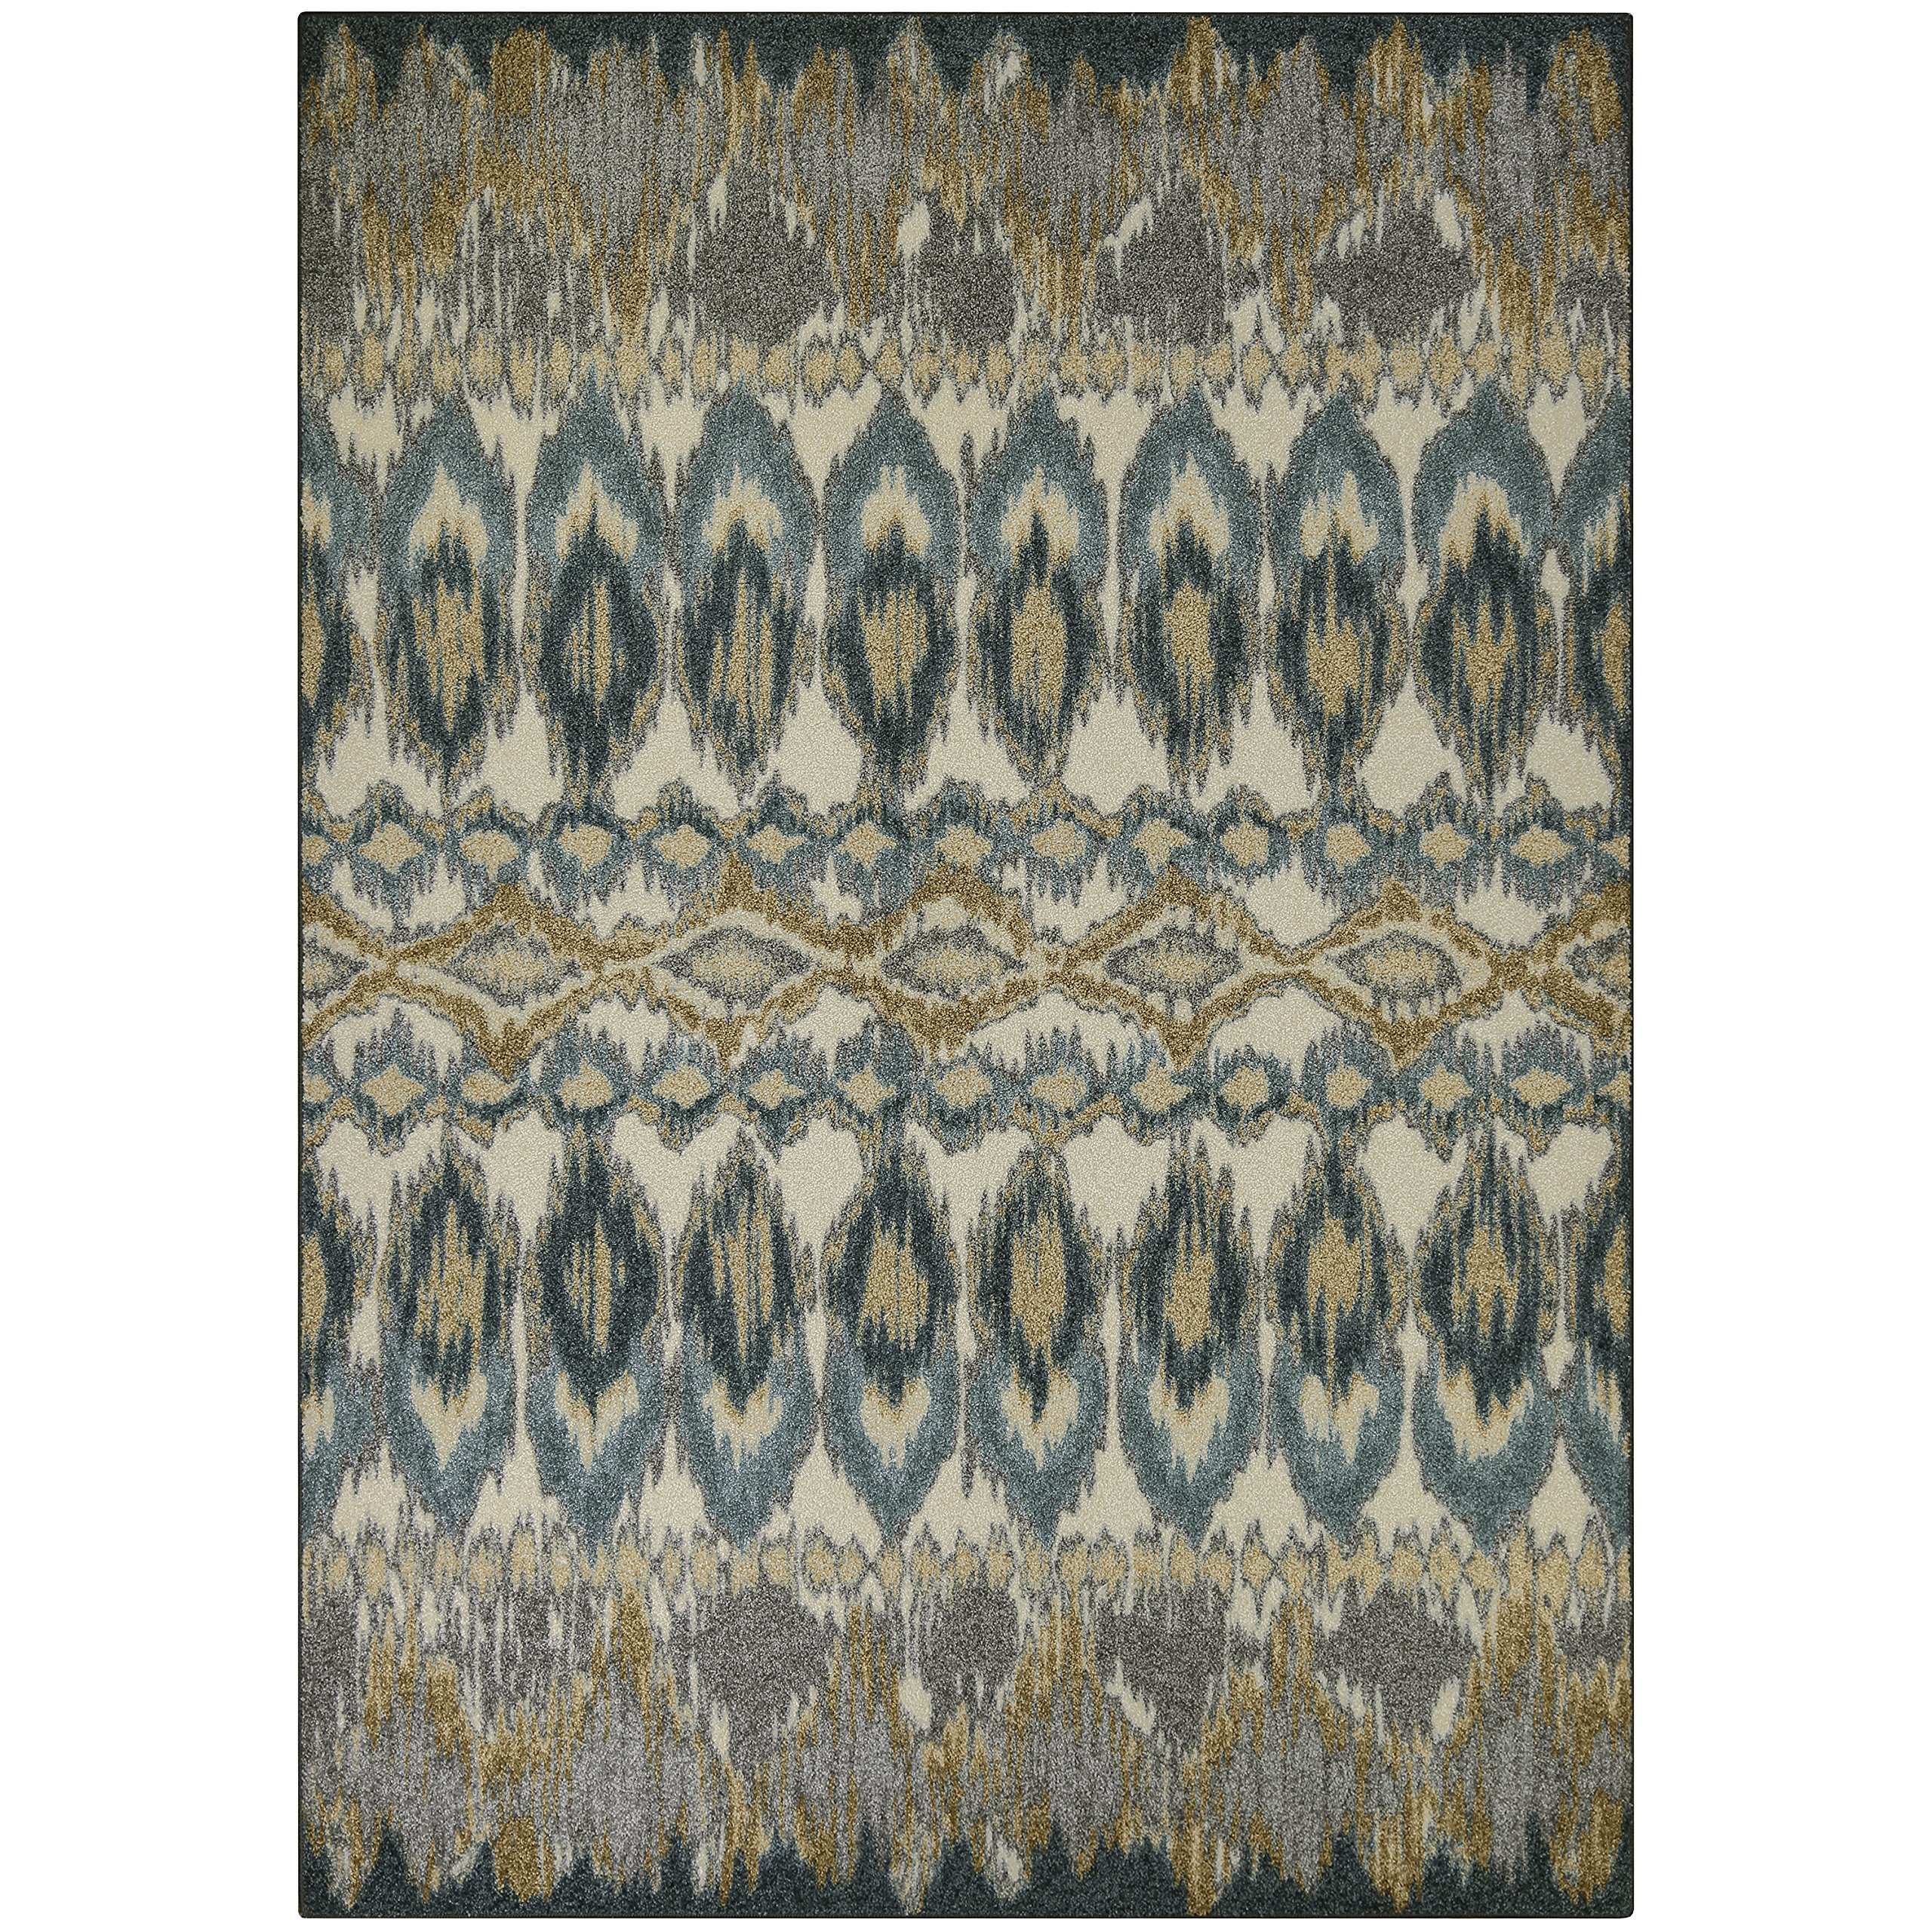 Area Rugs, Maples Rugs [Made in USA][Nessa Artwork Collection] 7' x 10' Non Slip Padded Large Rug for Living Room, Bedroom, and Dining Room by Maples Rugs